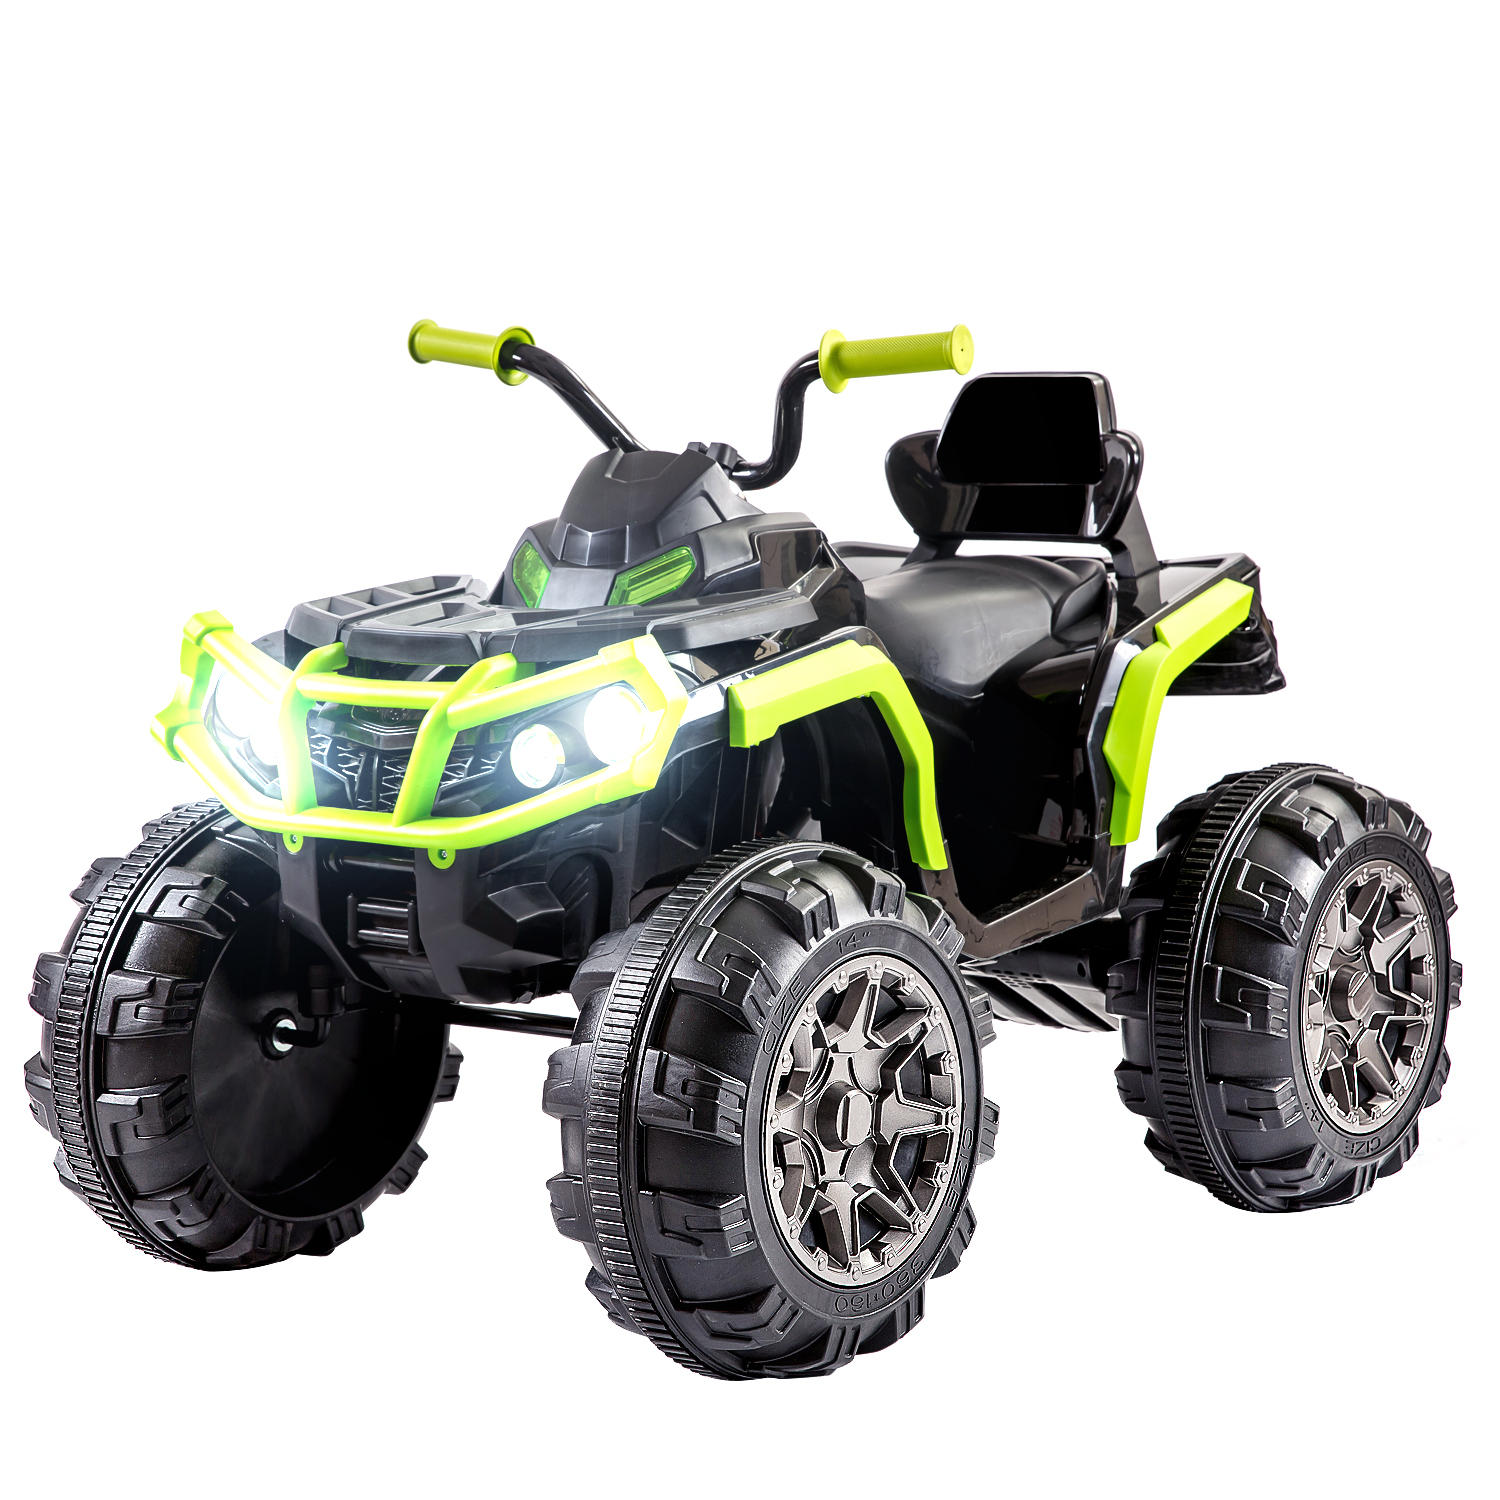 7aeab2bb7 [US DIRECT] Merax 12V Power Kids Electric Bike Car With Led Light Music  Player 2 Speeds Modes 2 Hours Run Time